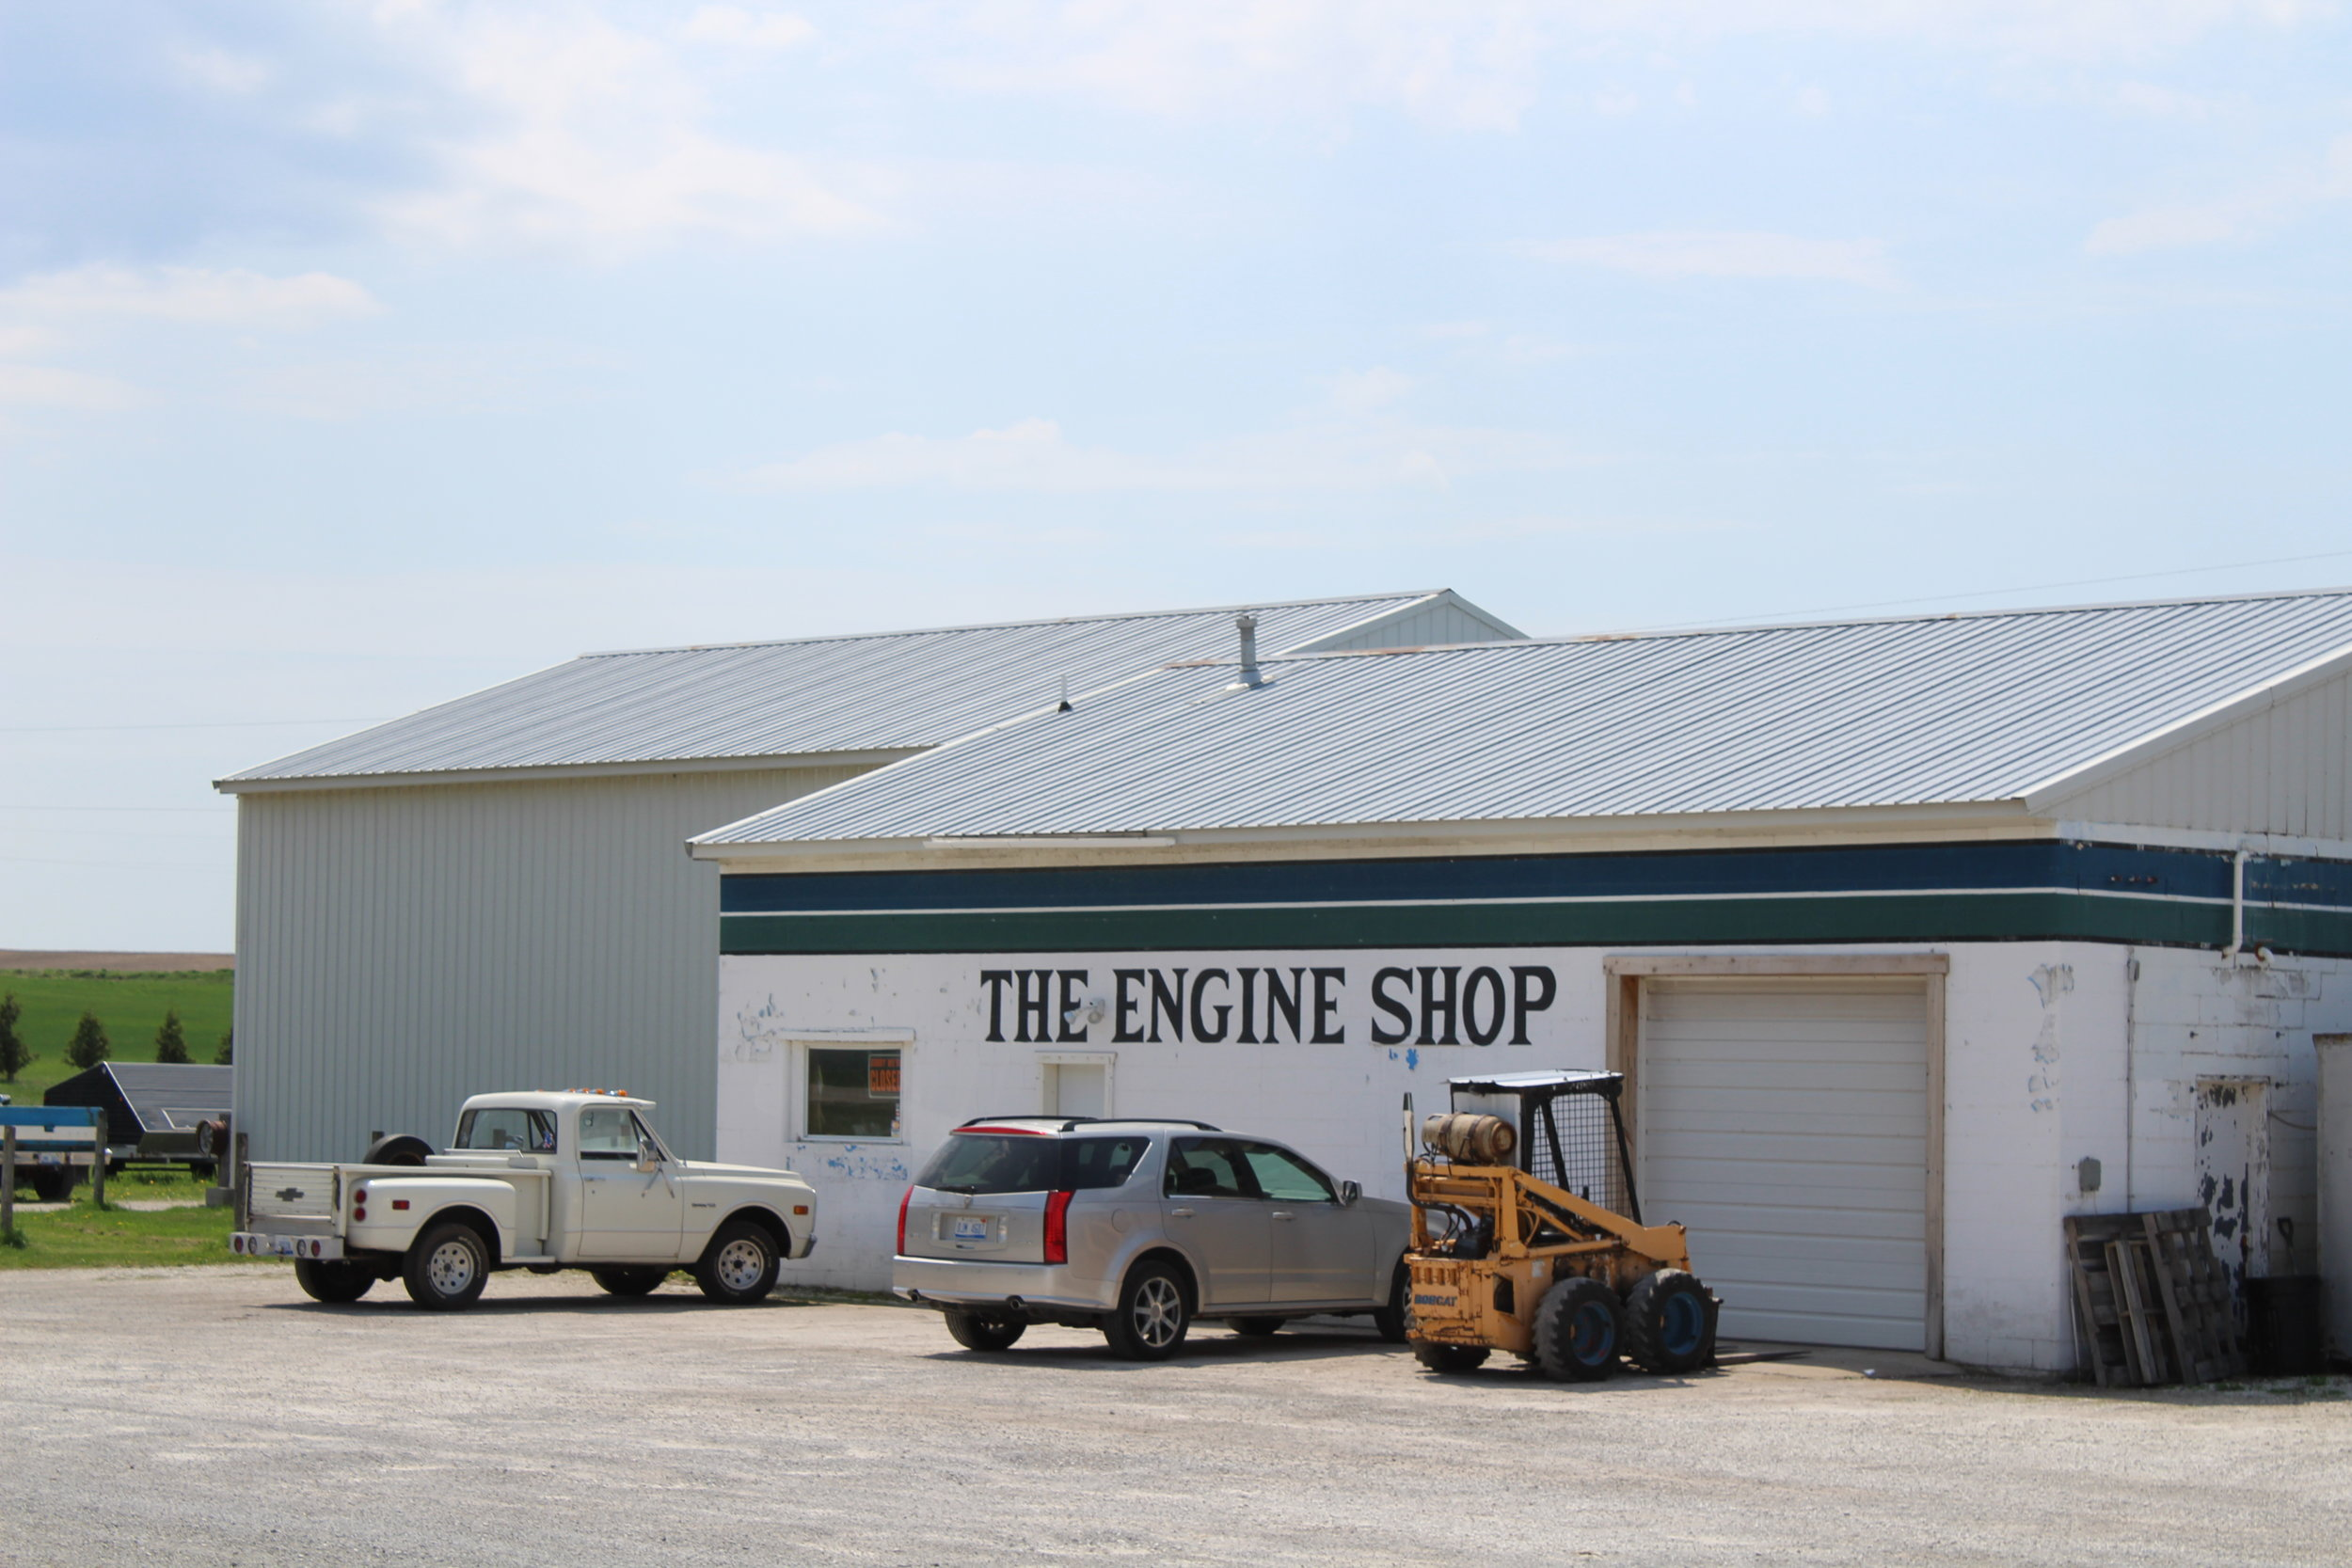 The Engine Shop - 3218 US 23 SouthRogers City, MI 49779(989) 734-4241